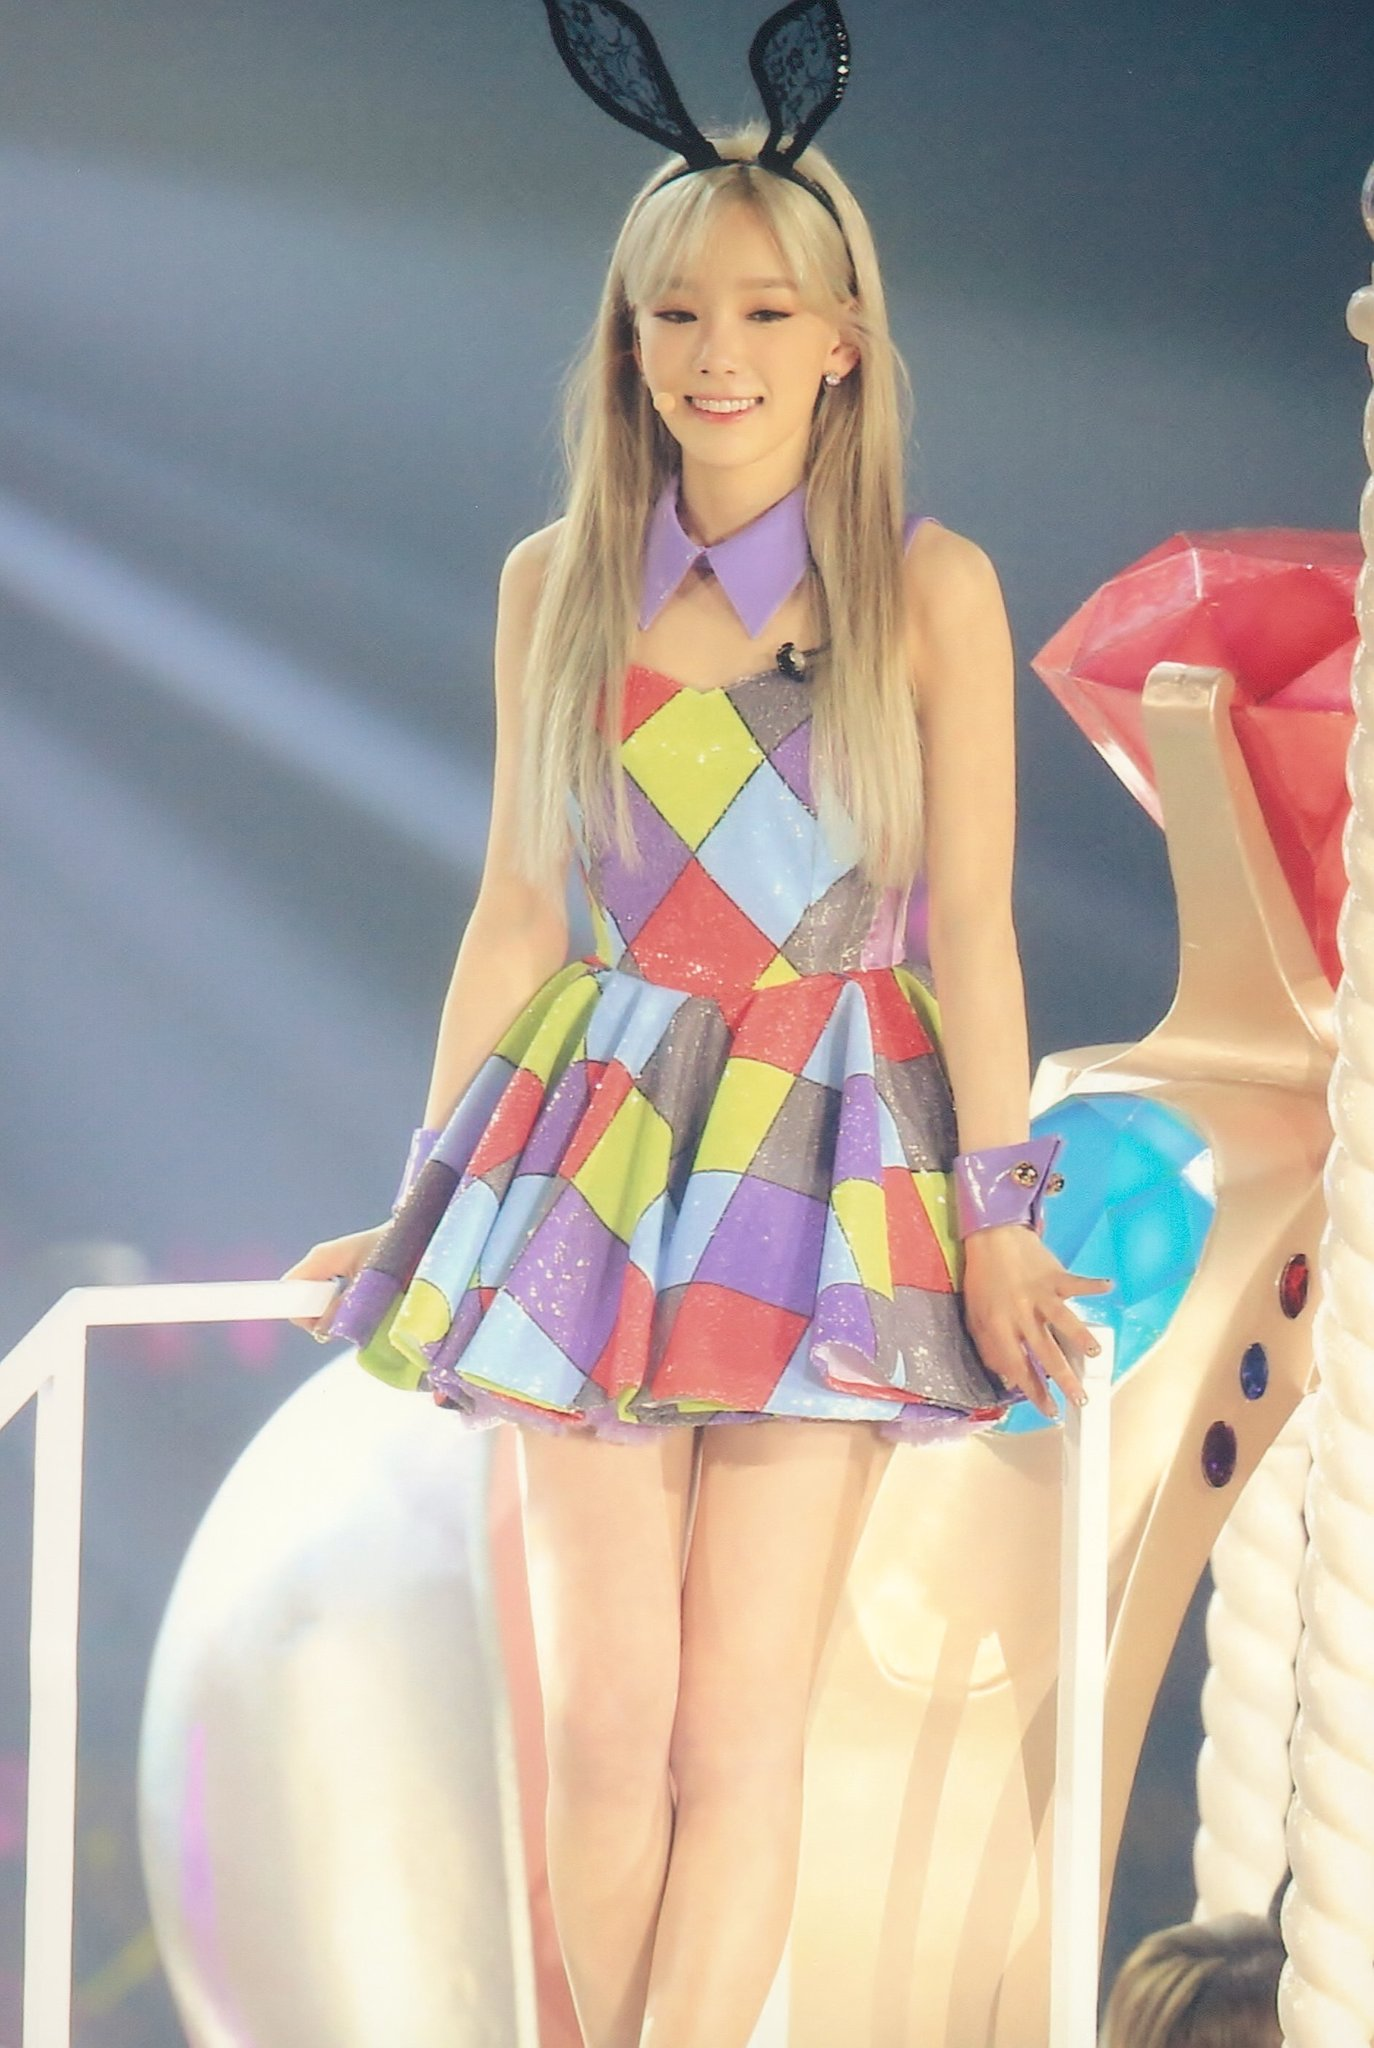 imgbox.com 38 best images about แทยอน on Pinterest | Incheon, Airport fashion and Parks